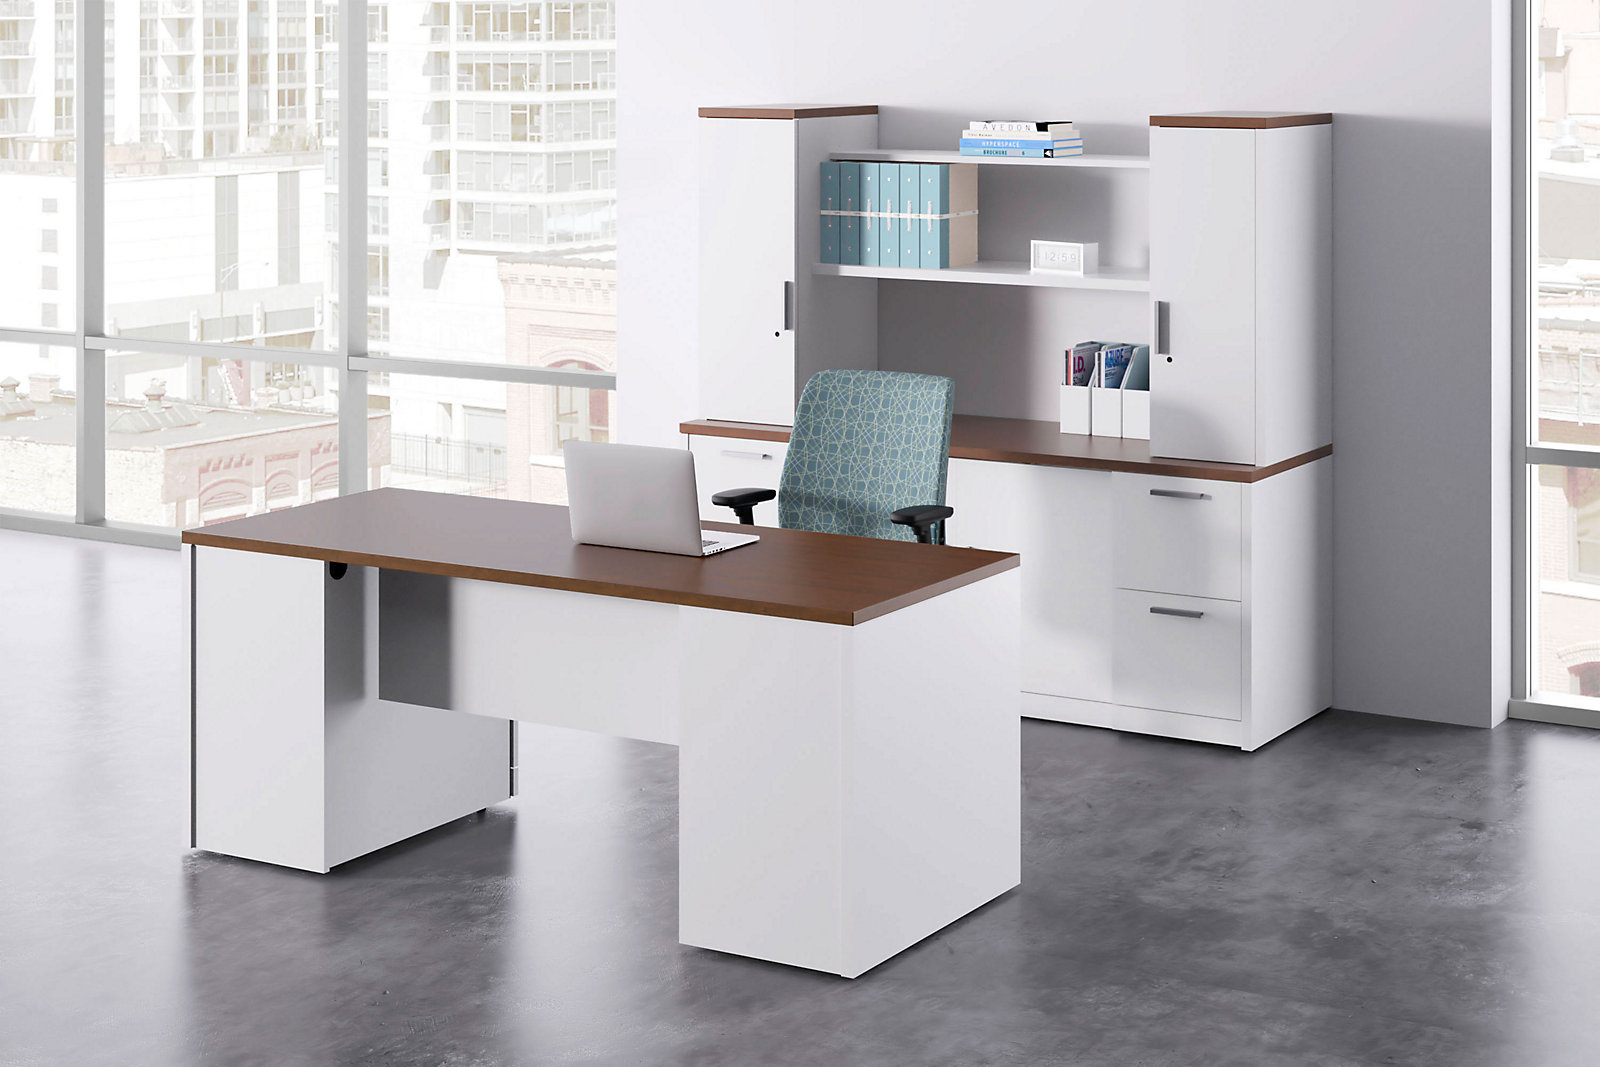 10500 Series | HON Office Furniture on hon 10700 series credenza, l-shaped executive desks with credenza, hon park avenue couch set, hon storage cabinet hutch, hon executive kneehole credenza, hon lock kit, hon desk with return,